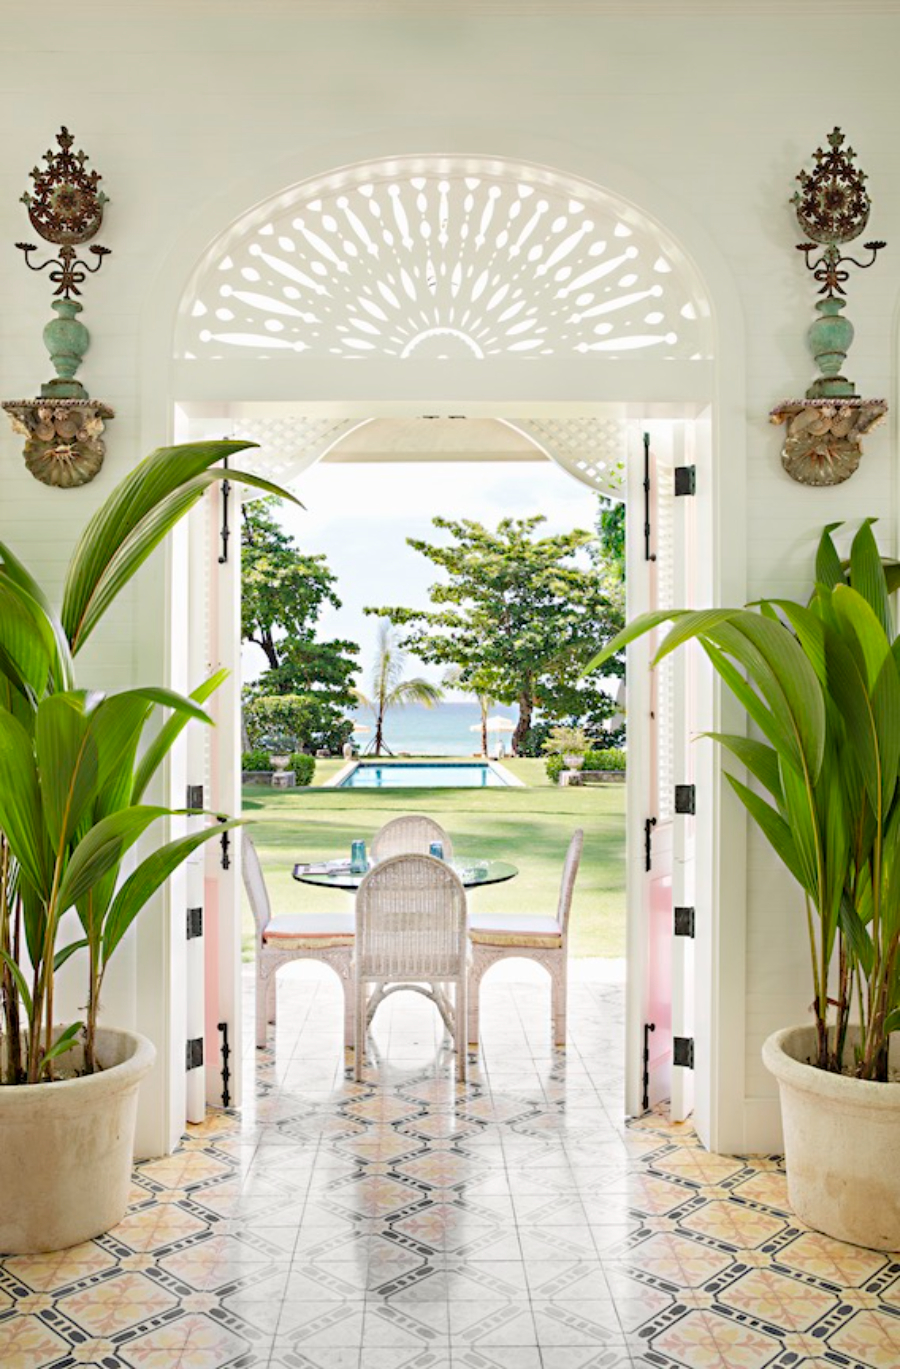 Kemble Interiors High-End Interiors for High-End Clients_4